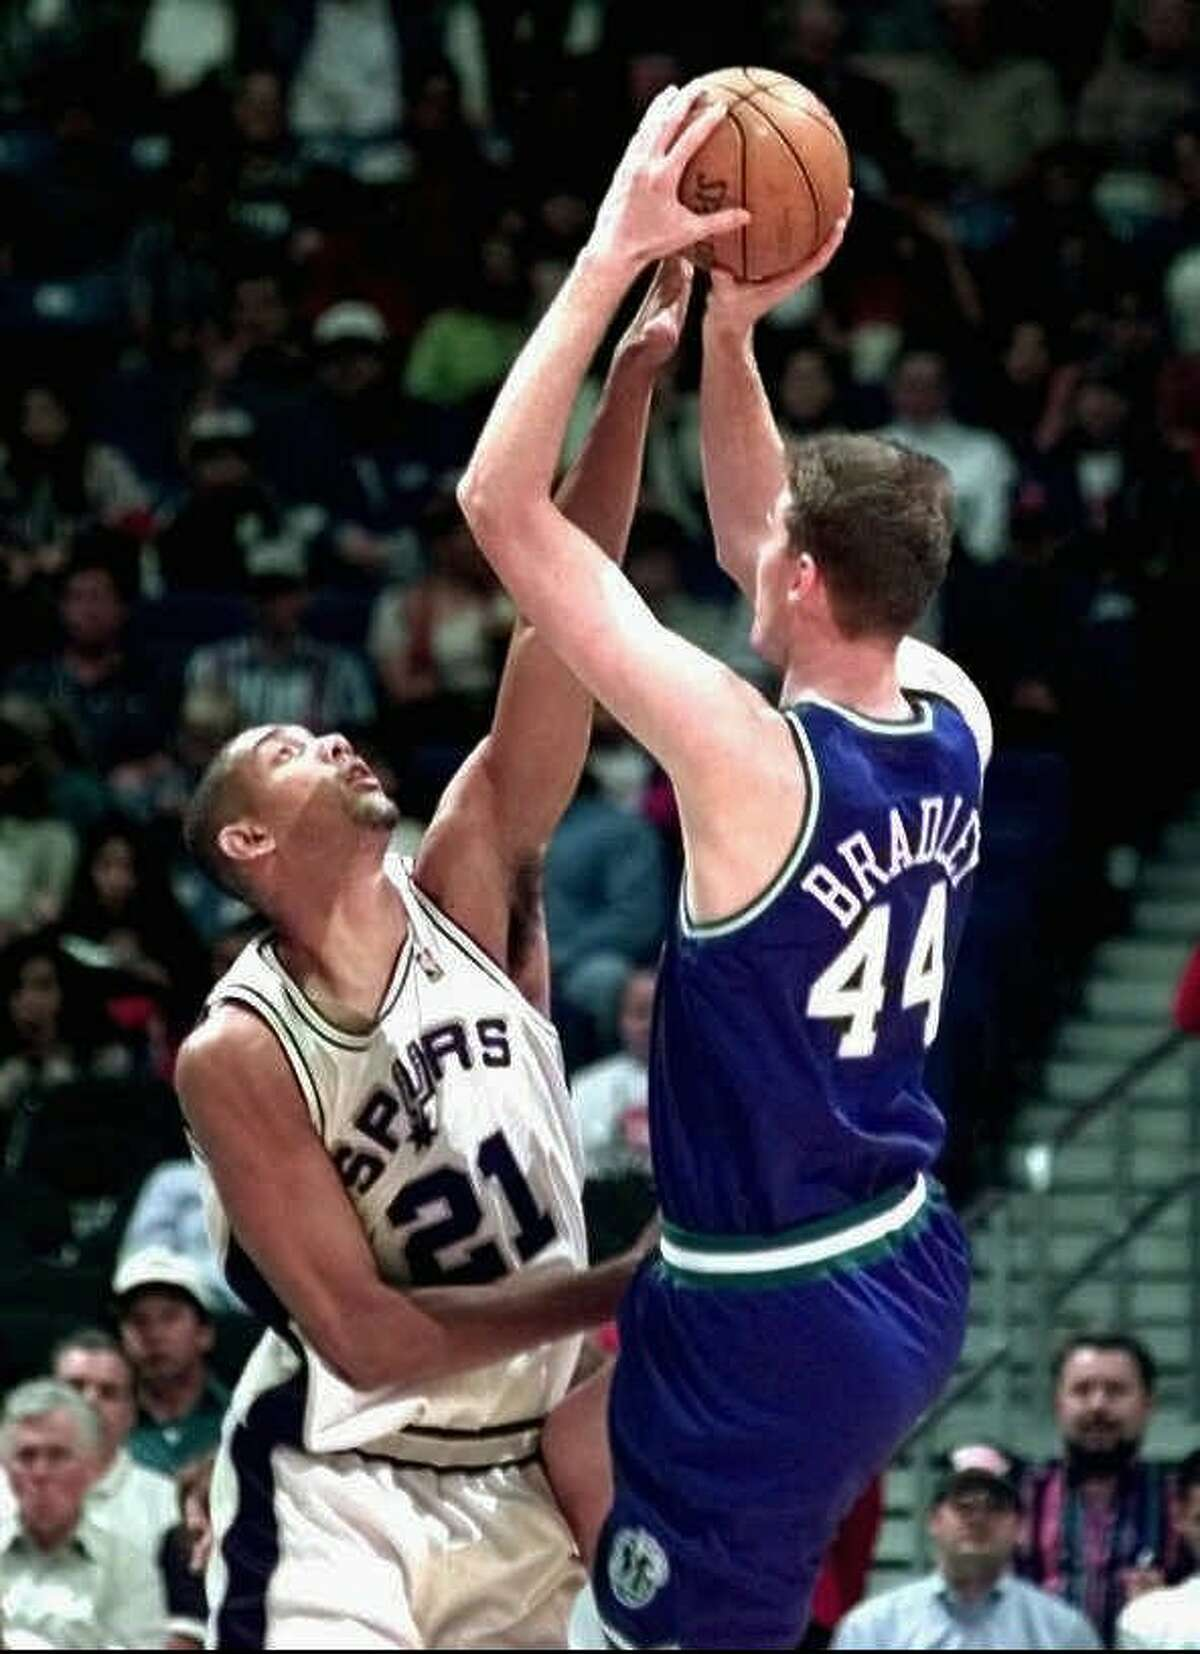 San Antonio Spurs Tim Duncan (21) blocks the attempted shot by Dallas Mavericks center Shawn Bradley (44) during first quarter action of their preseason game at the Alamodome in San Antonio , Wednesday Oct. 22, 1997. (Express-News,Doug Sehres)